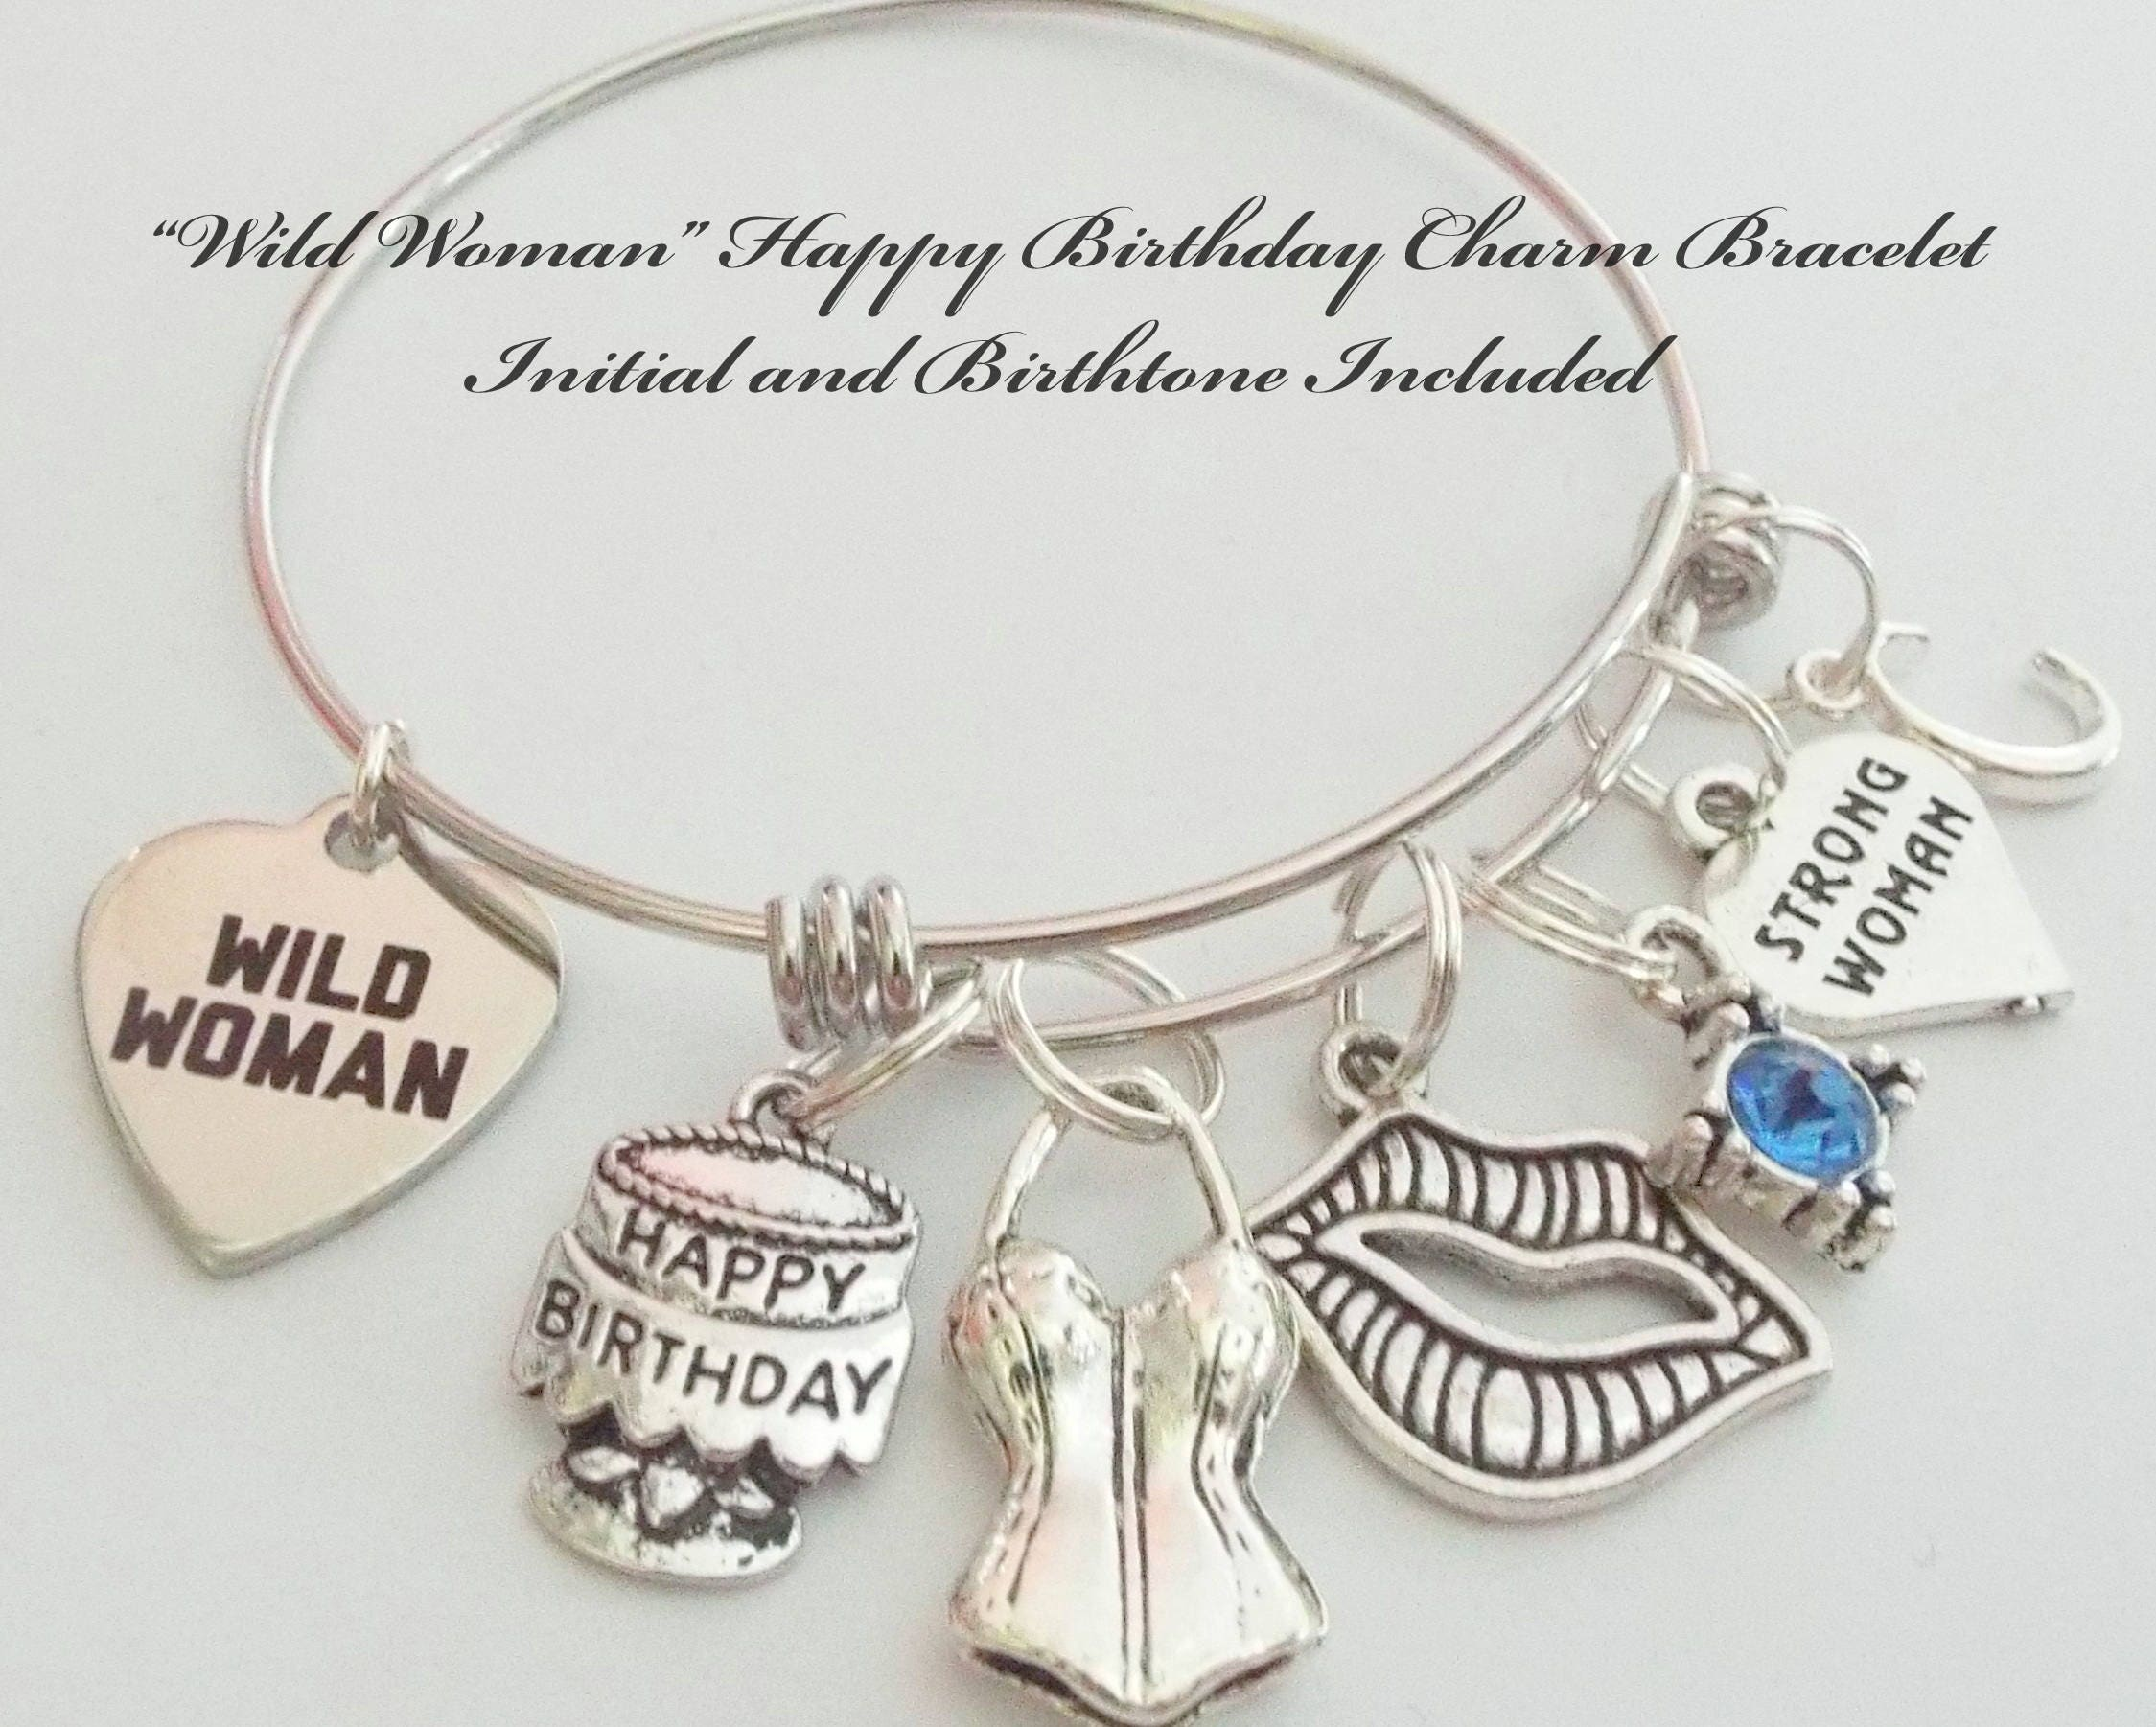 Personalized Jewelry Gift Best Friend Birthday For Her Gallery Photo